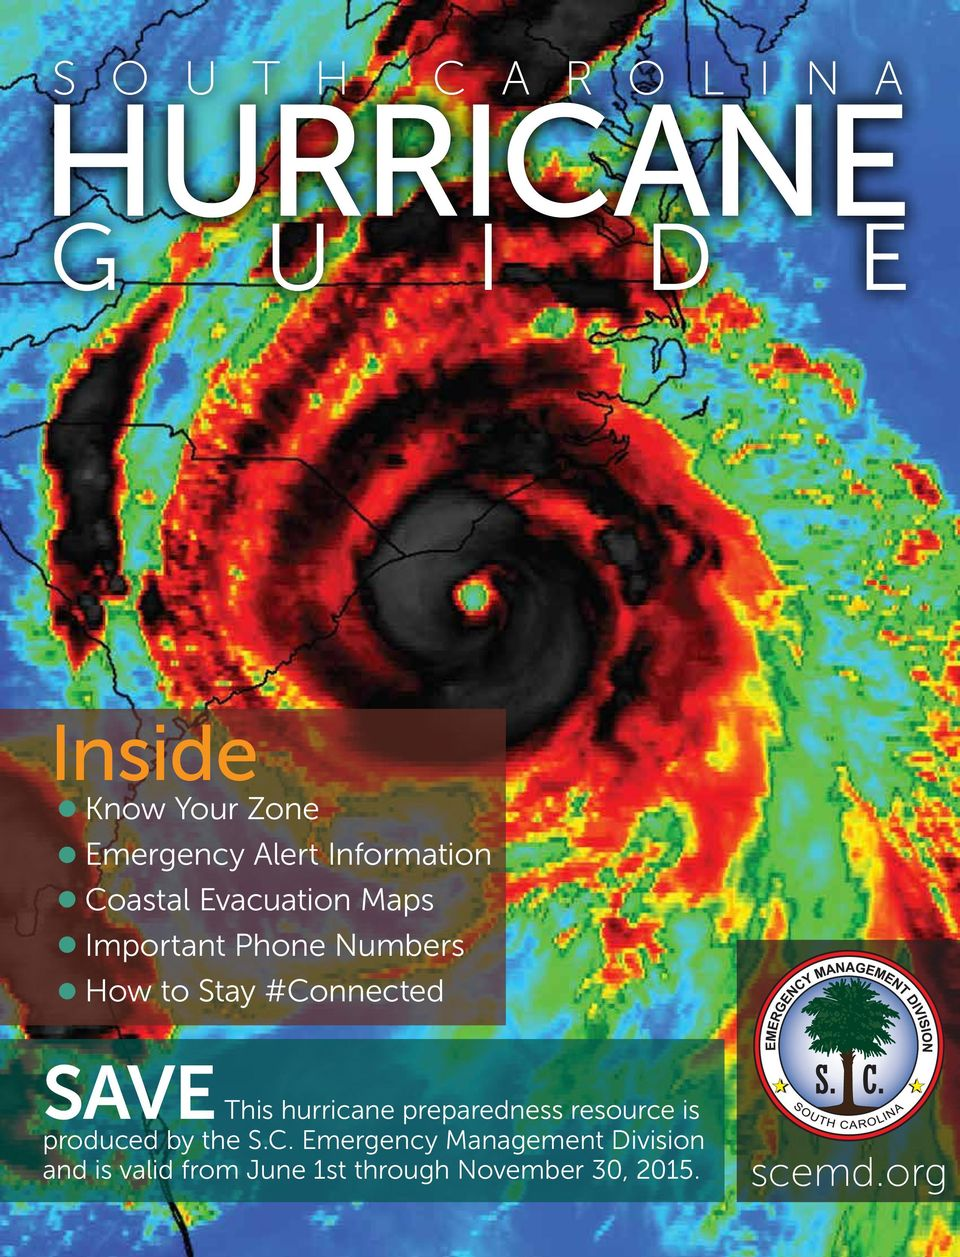 hurricane preparedness resource is produced by the S.C.